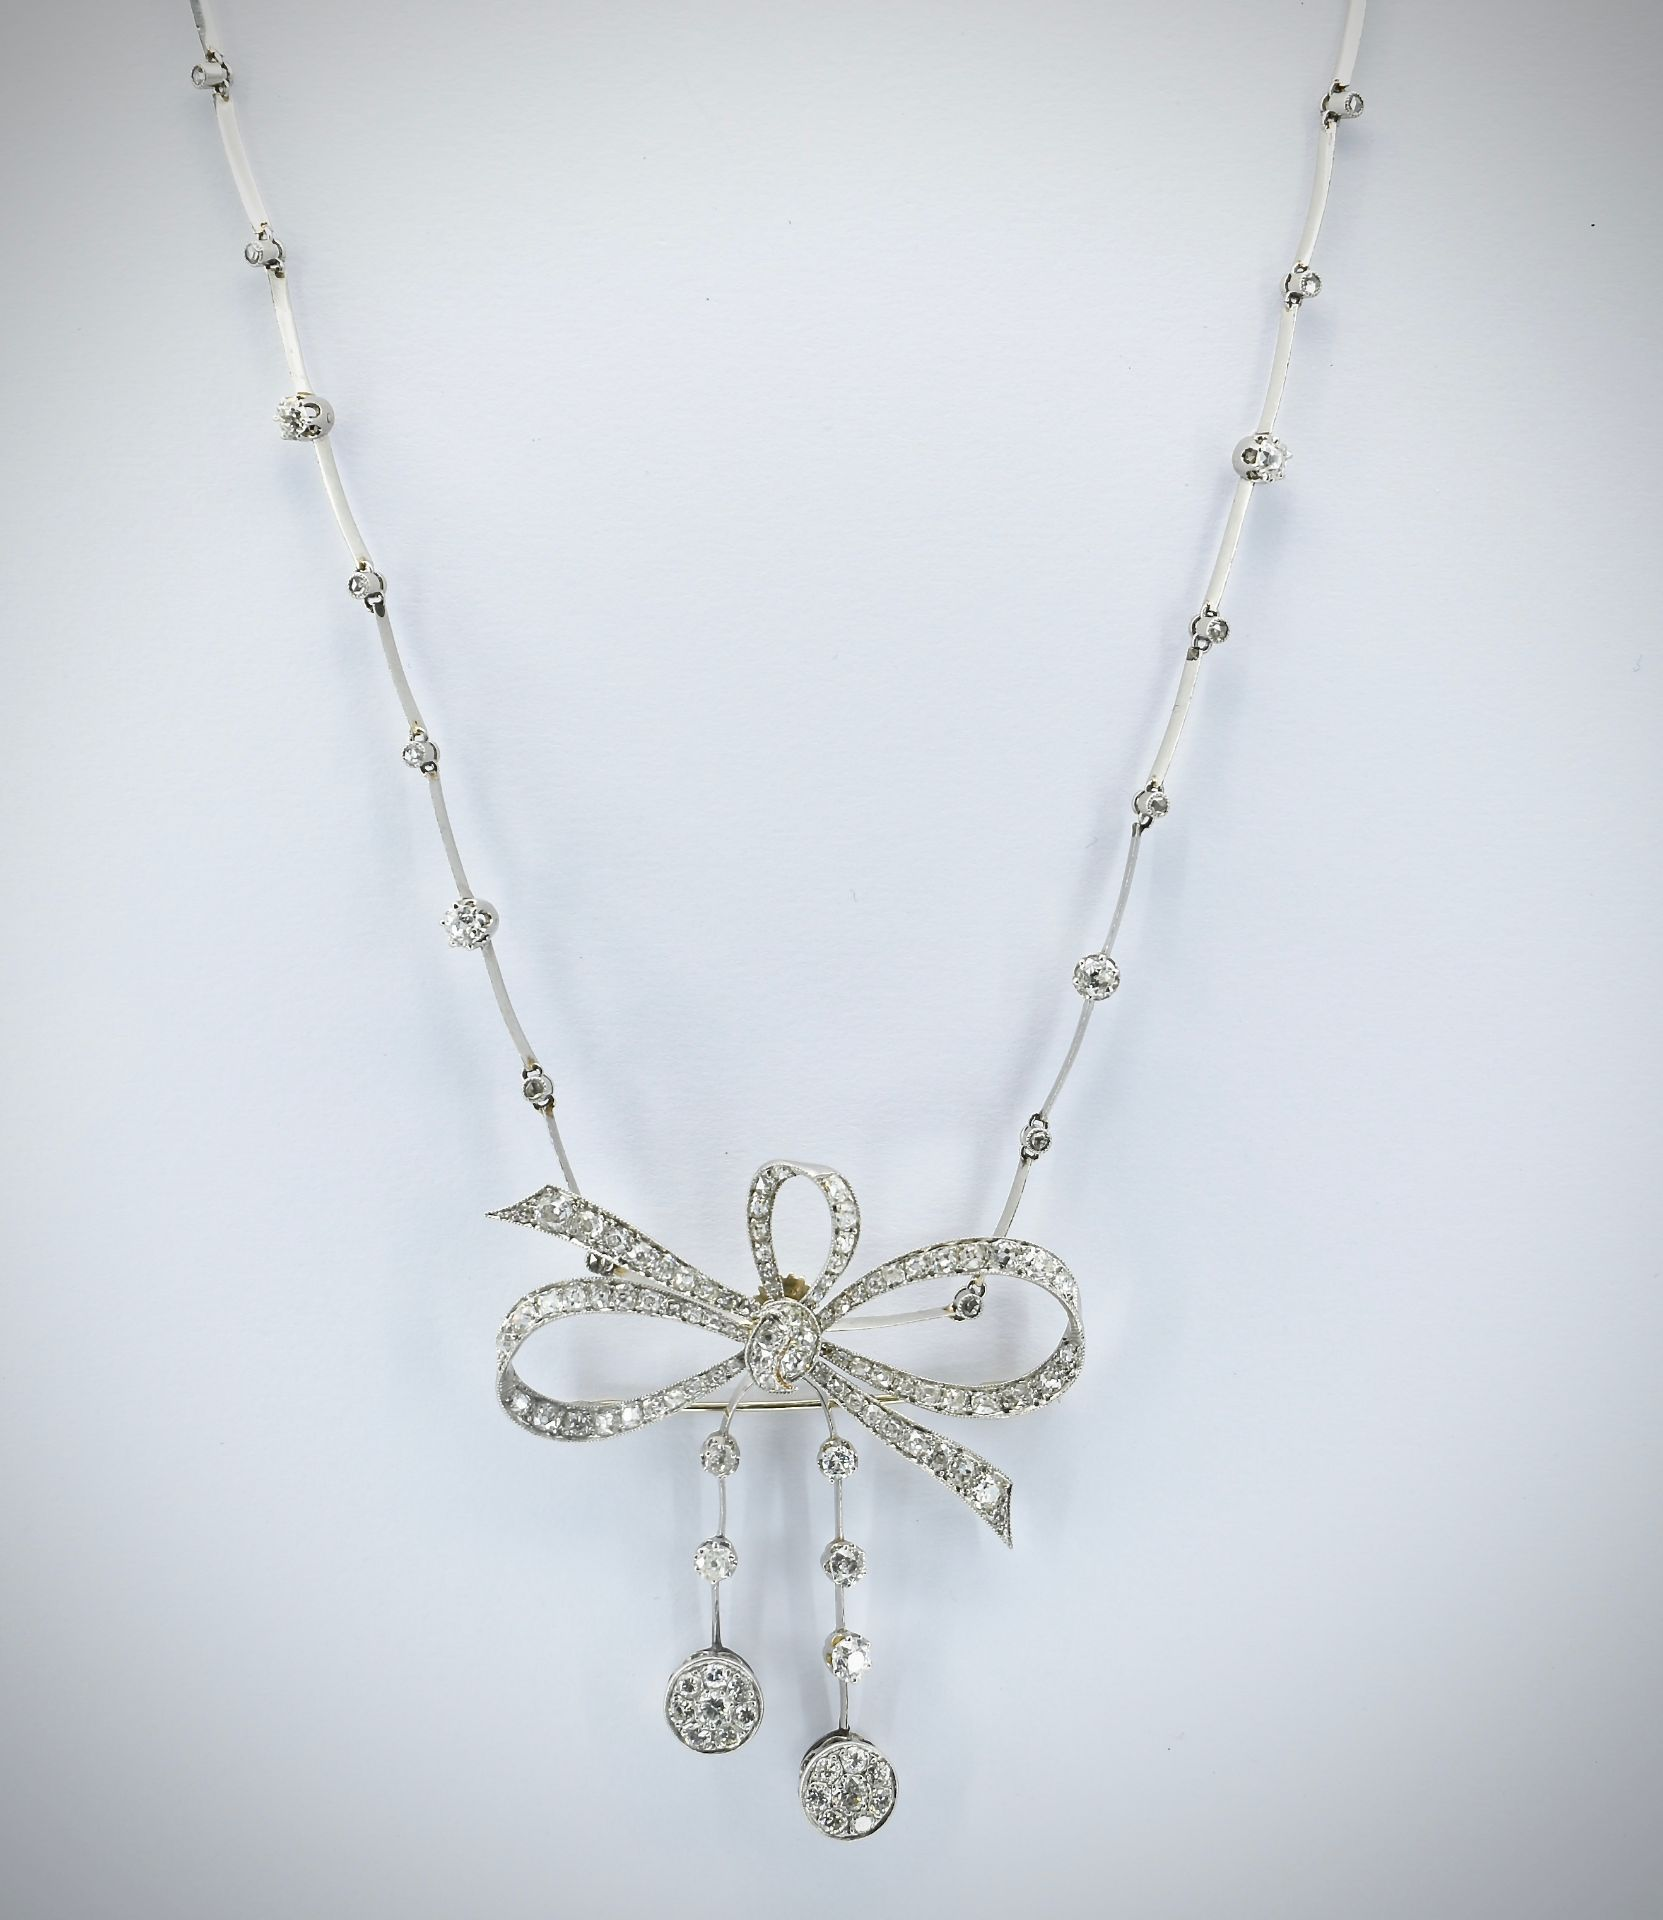 French 18ct Gold Platinum & Diamond Collar Necklace - Image 4 of 9